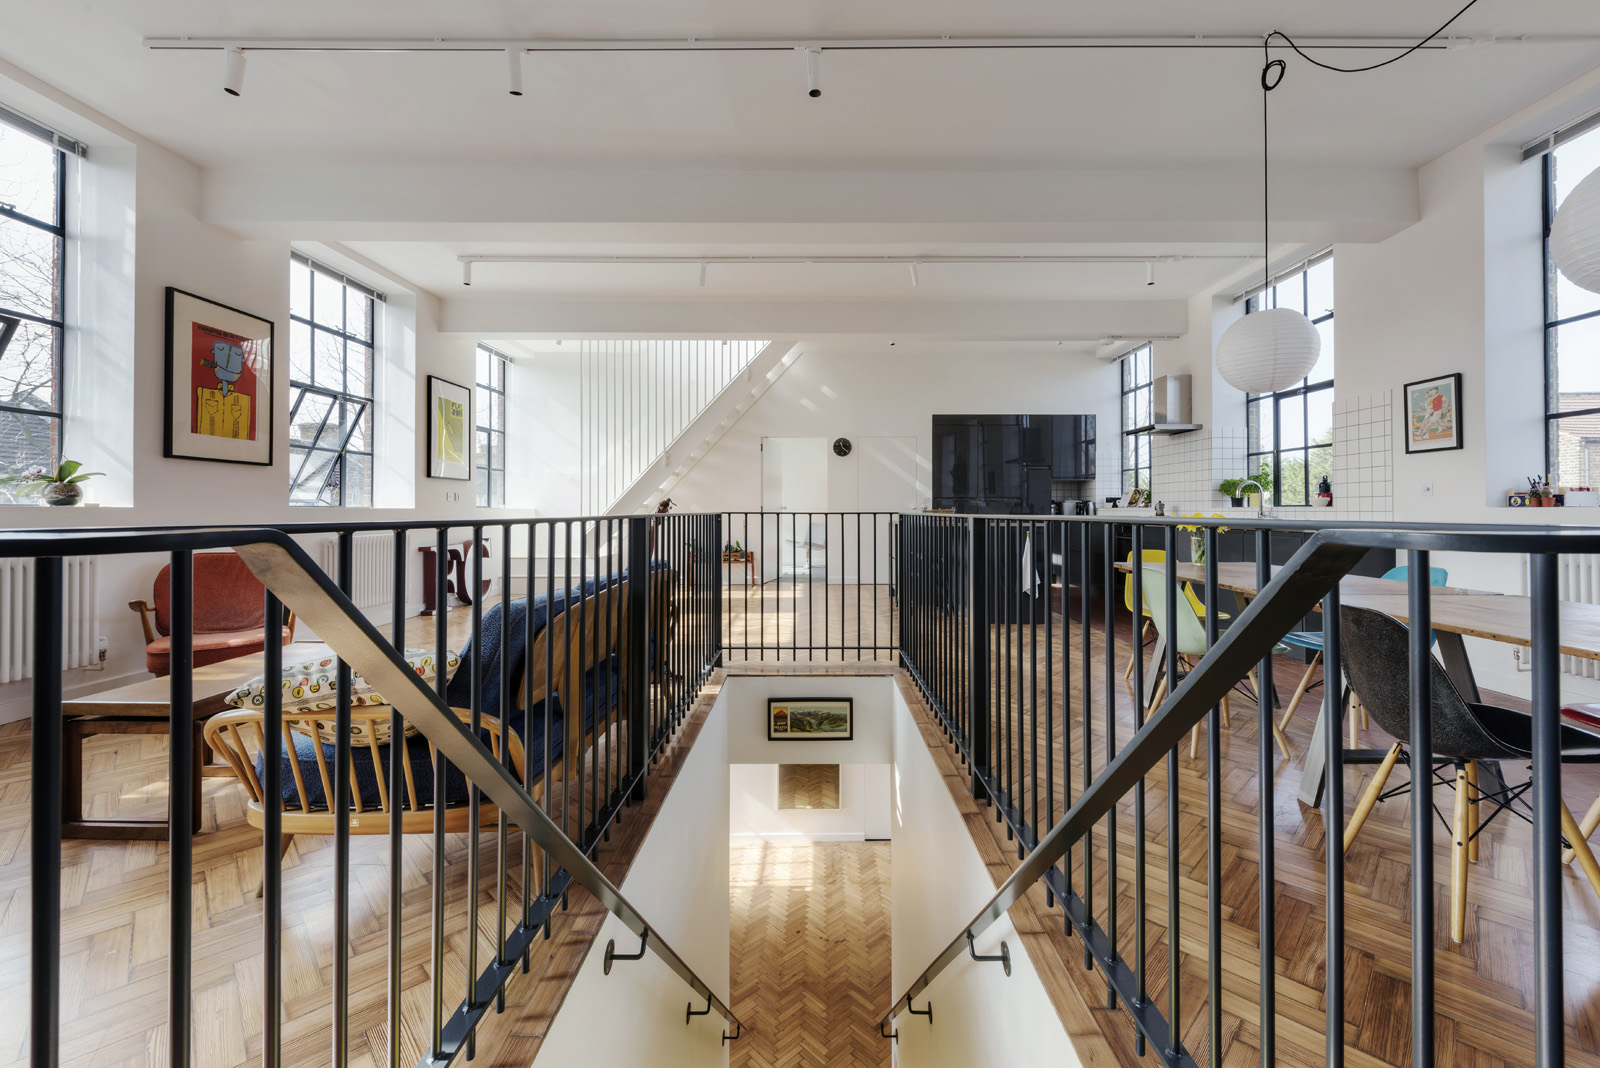 A new central staircase connects the ground- with the first floor and acts as a spatial zoning element defining kitchen, dining and living area.